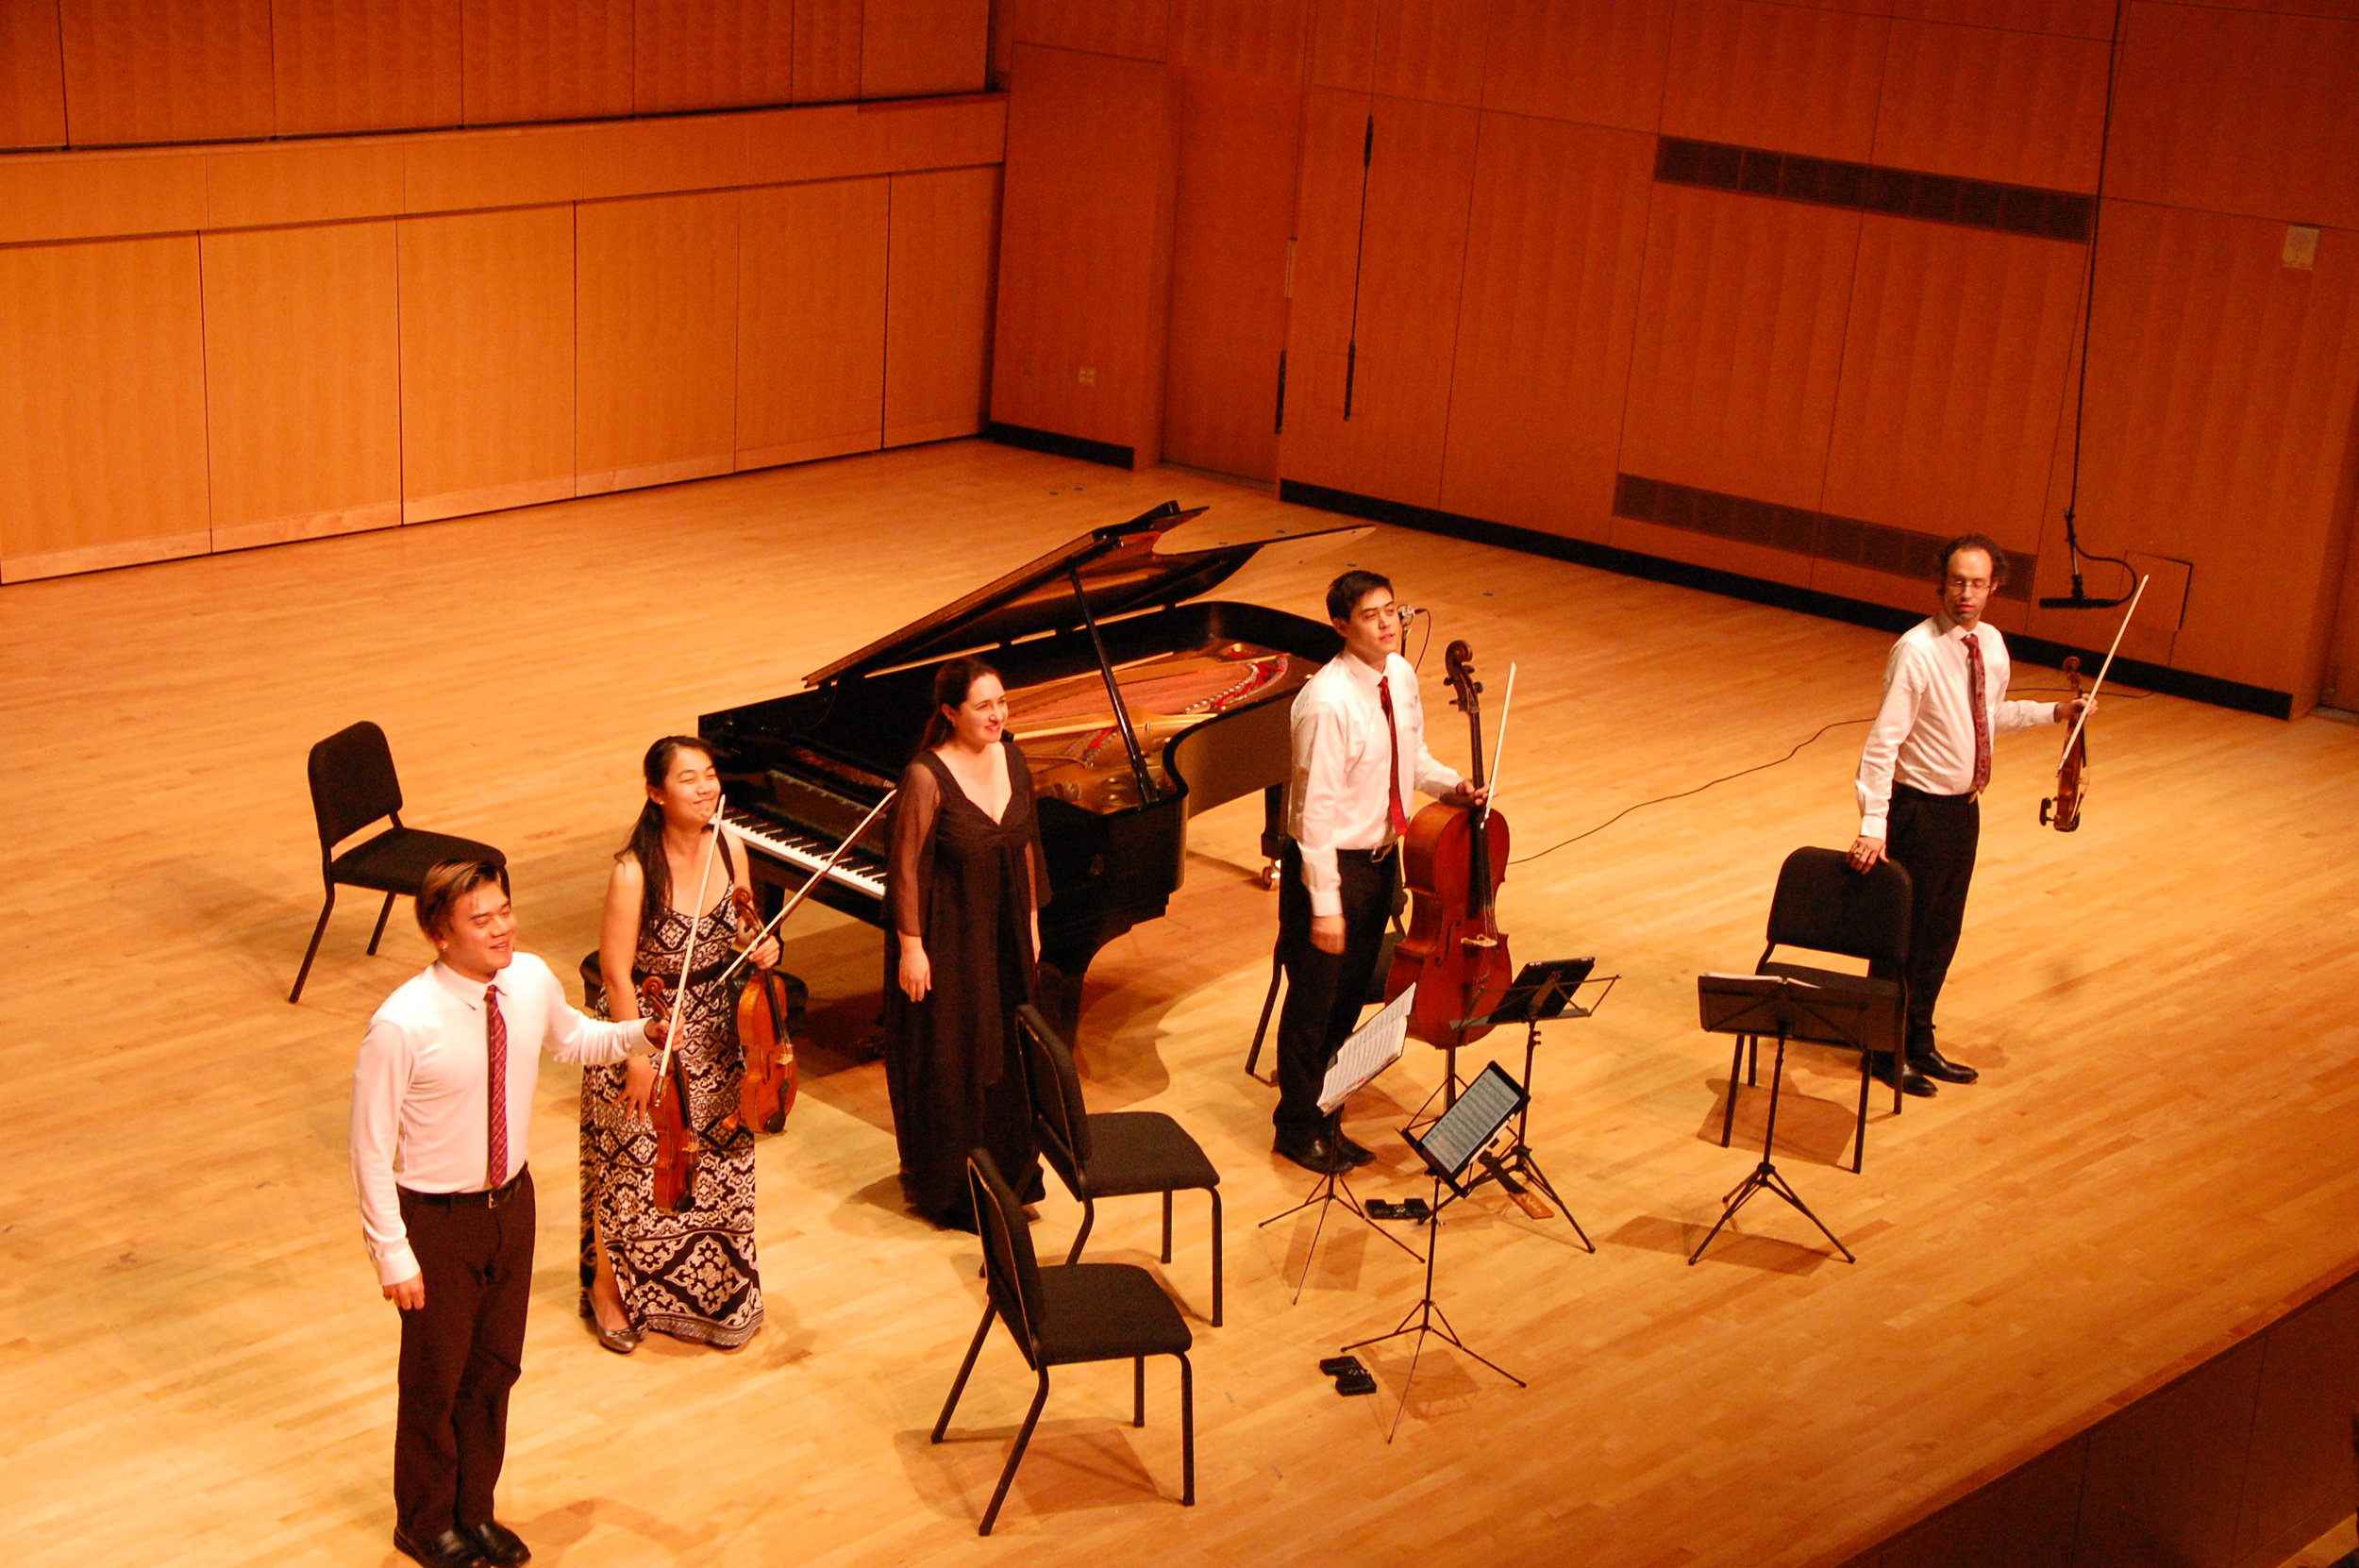 Eric Chin, violin; Pei-Ling Lin, viola; Simone Dinnerstein, piano; Jeremiah Shaw, cello; and Joseph Maile, violin. Photo by Ronald Fedorczak; courtesy of the Candlelight Concert Society.